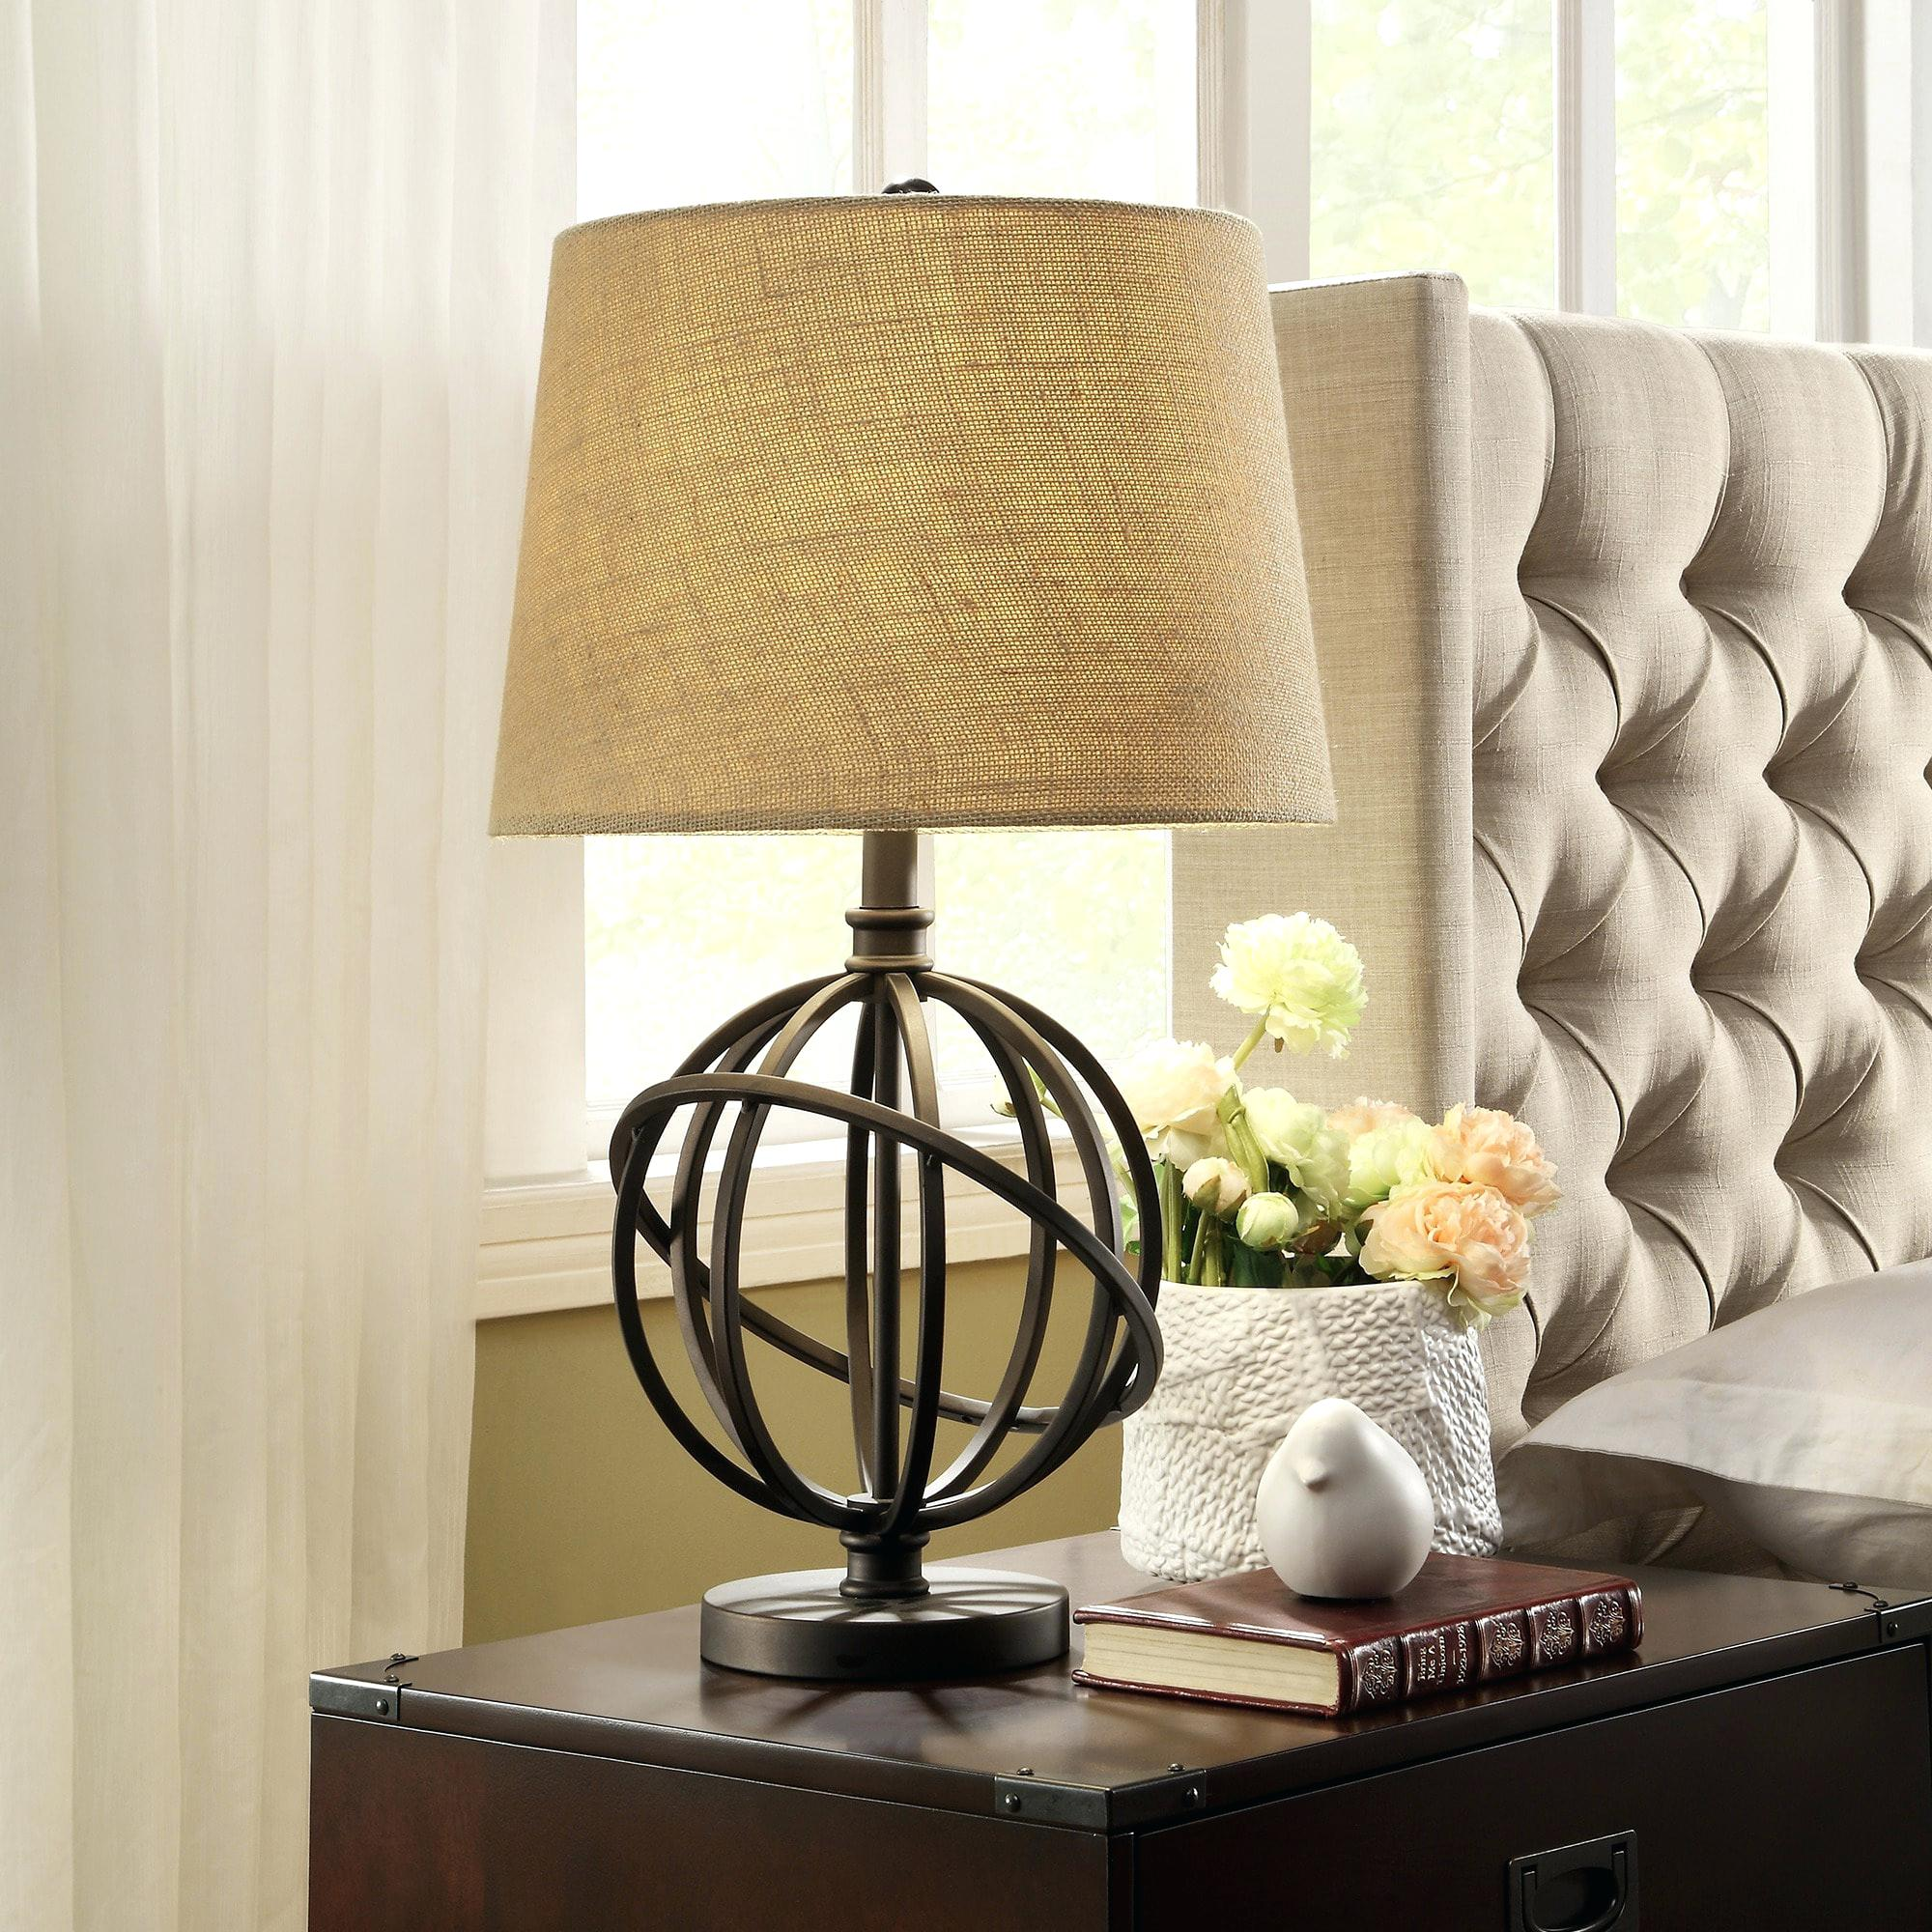 accent table lamps mix lighting tabletop fitmitagnes info cooper antique bronze metal orbit globe light lamp inspire artisan small mini tiny modern runner patterns round mats